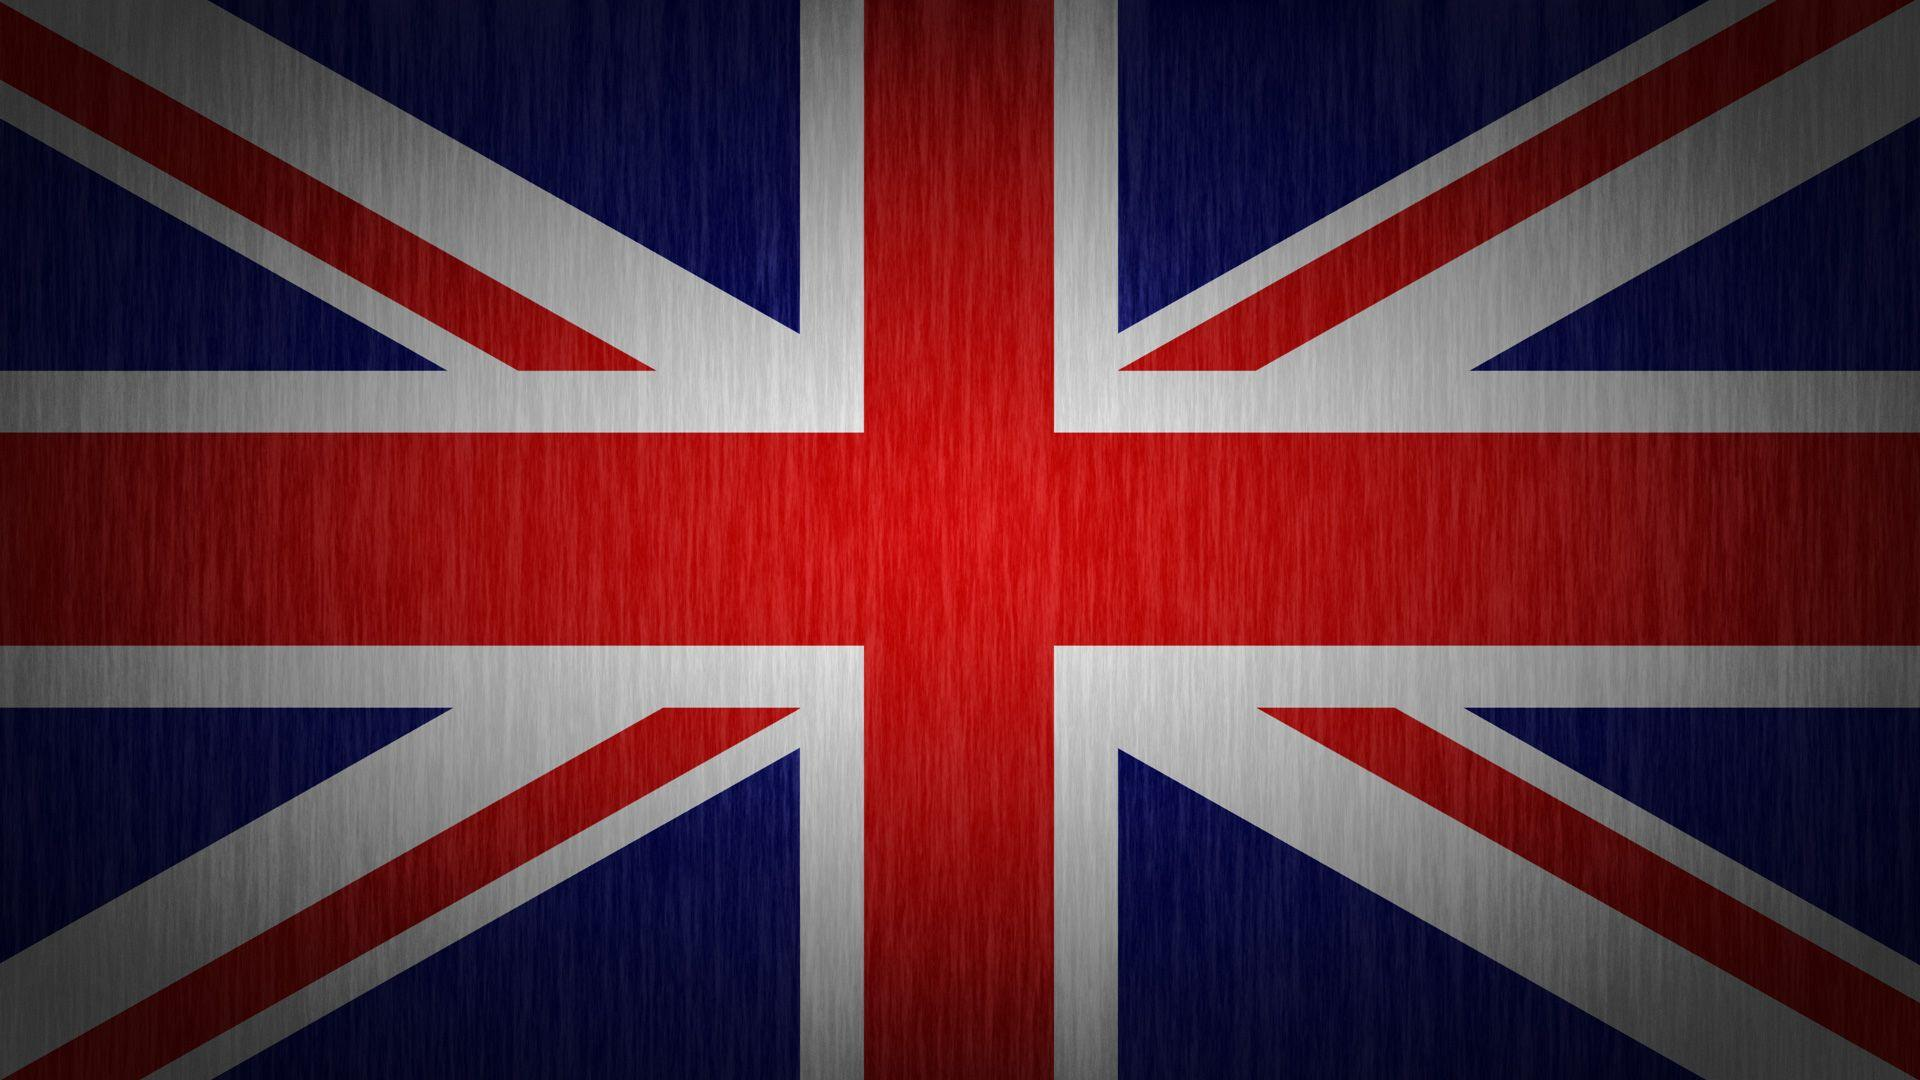 England Flag Wallpaper | British UK Flag Images | New Wallpapers